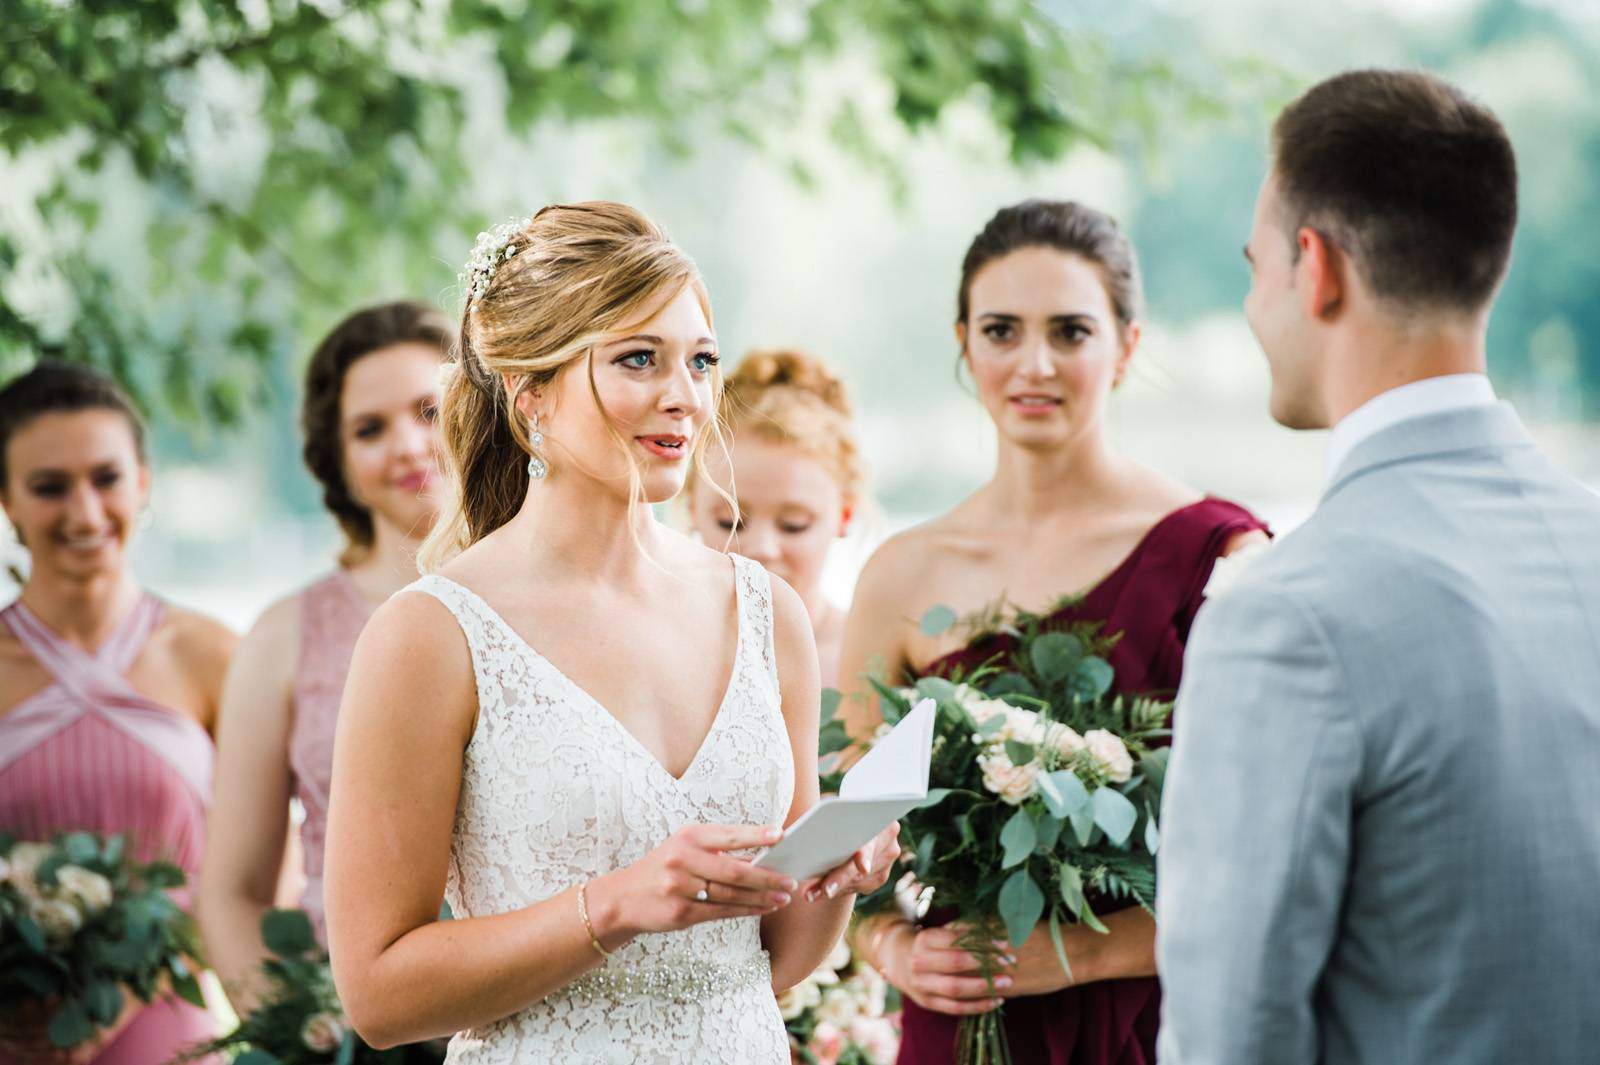 Bride reading vows on wedding day